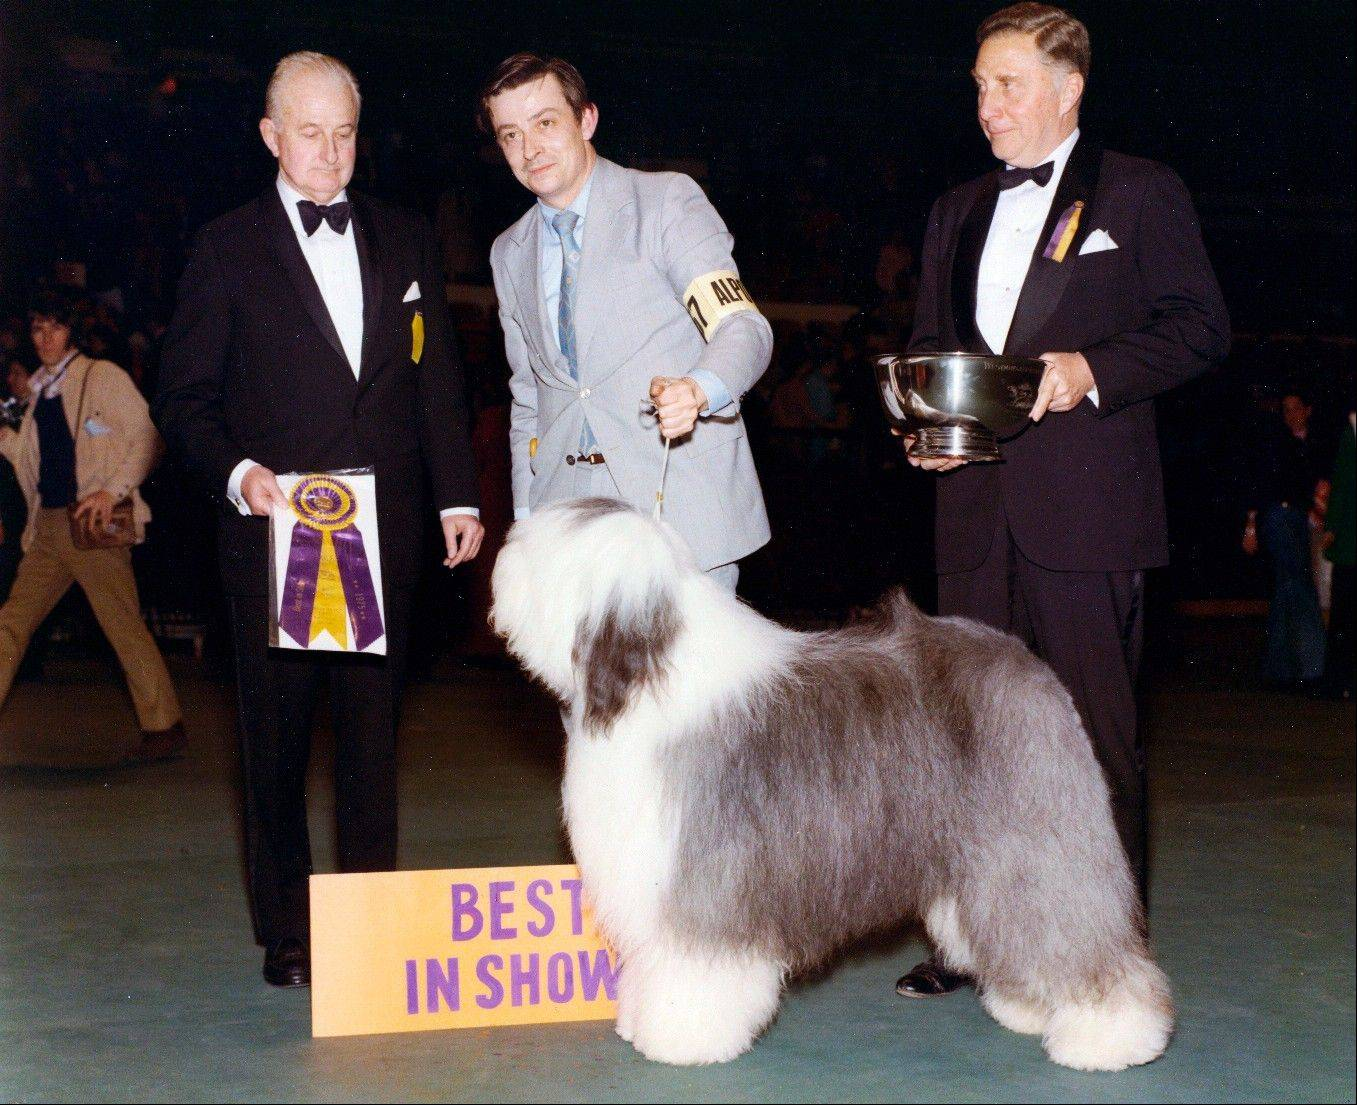 Sheepdog Sir Lancelot of Barvan placed as the Westminster Best In Show winner. Sheepdogs have been recognized by the American Kennel Club since the late 1800s and won best in show at Westminster in 1914 and 1975.